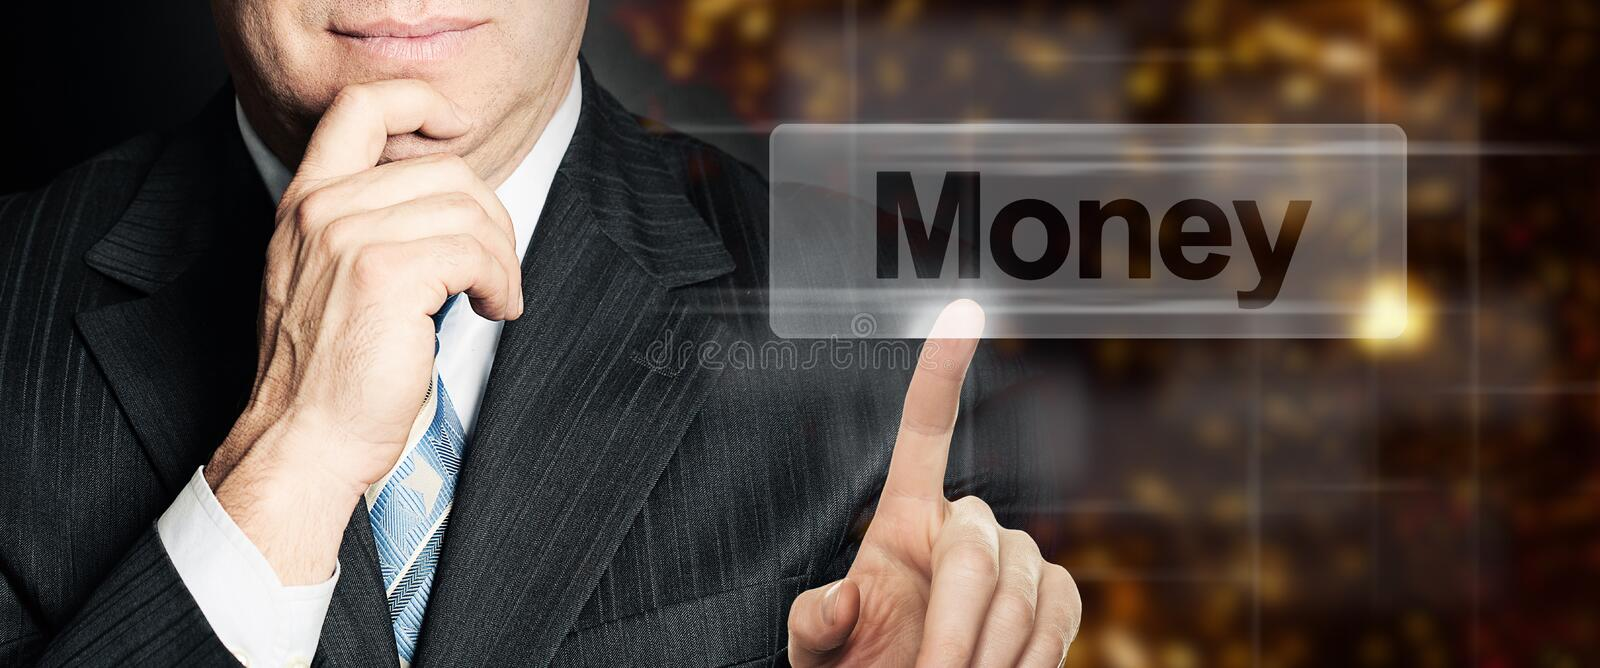 Businessman hand touching button Money, modern business background concept royalty free stock photos